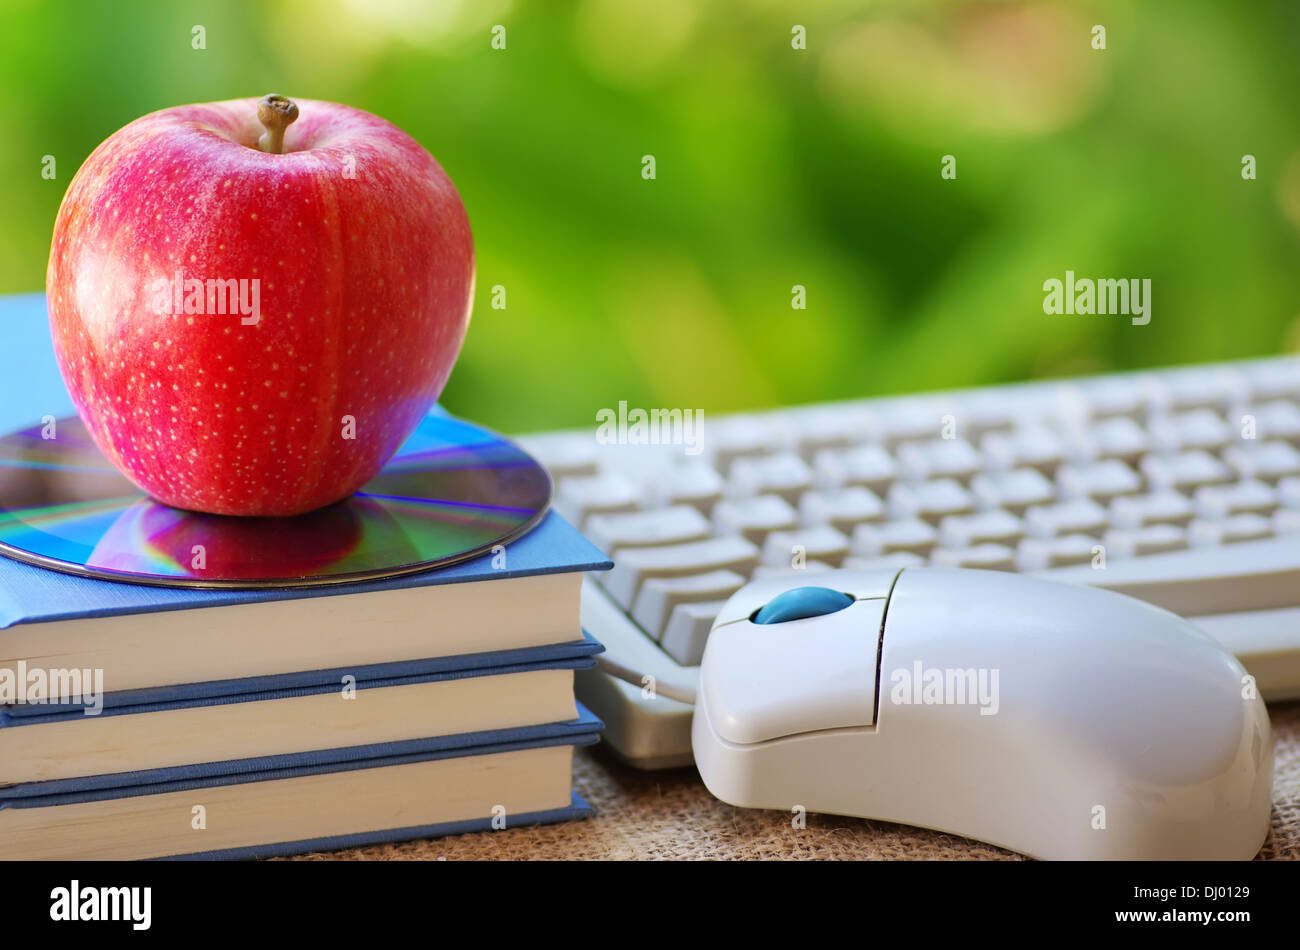 Red apple on book, DVD and mouse - Stock Image